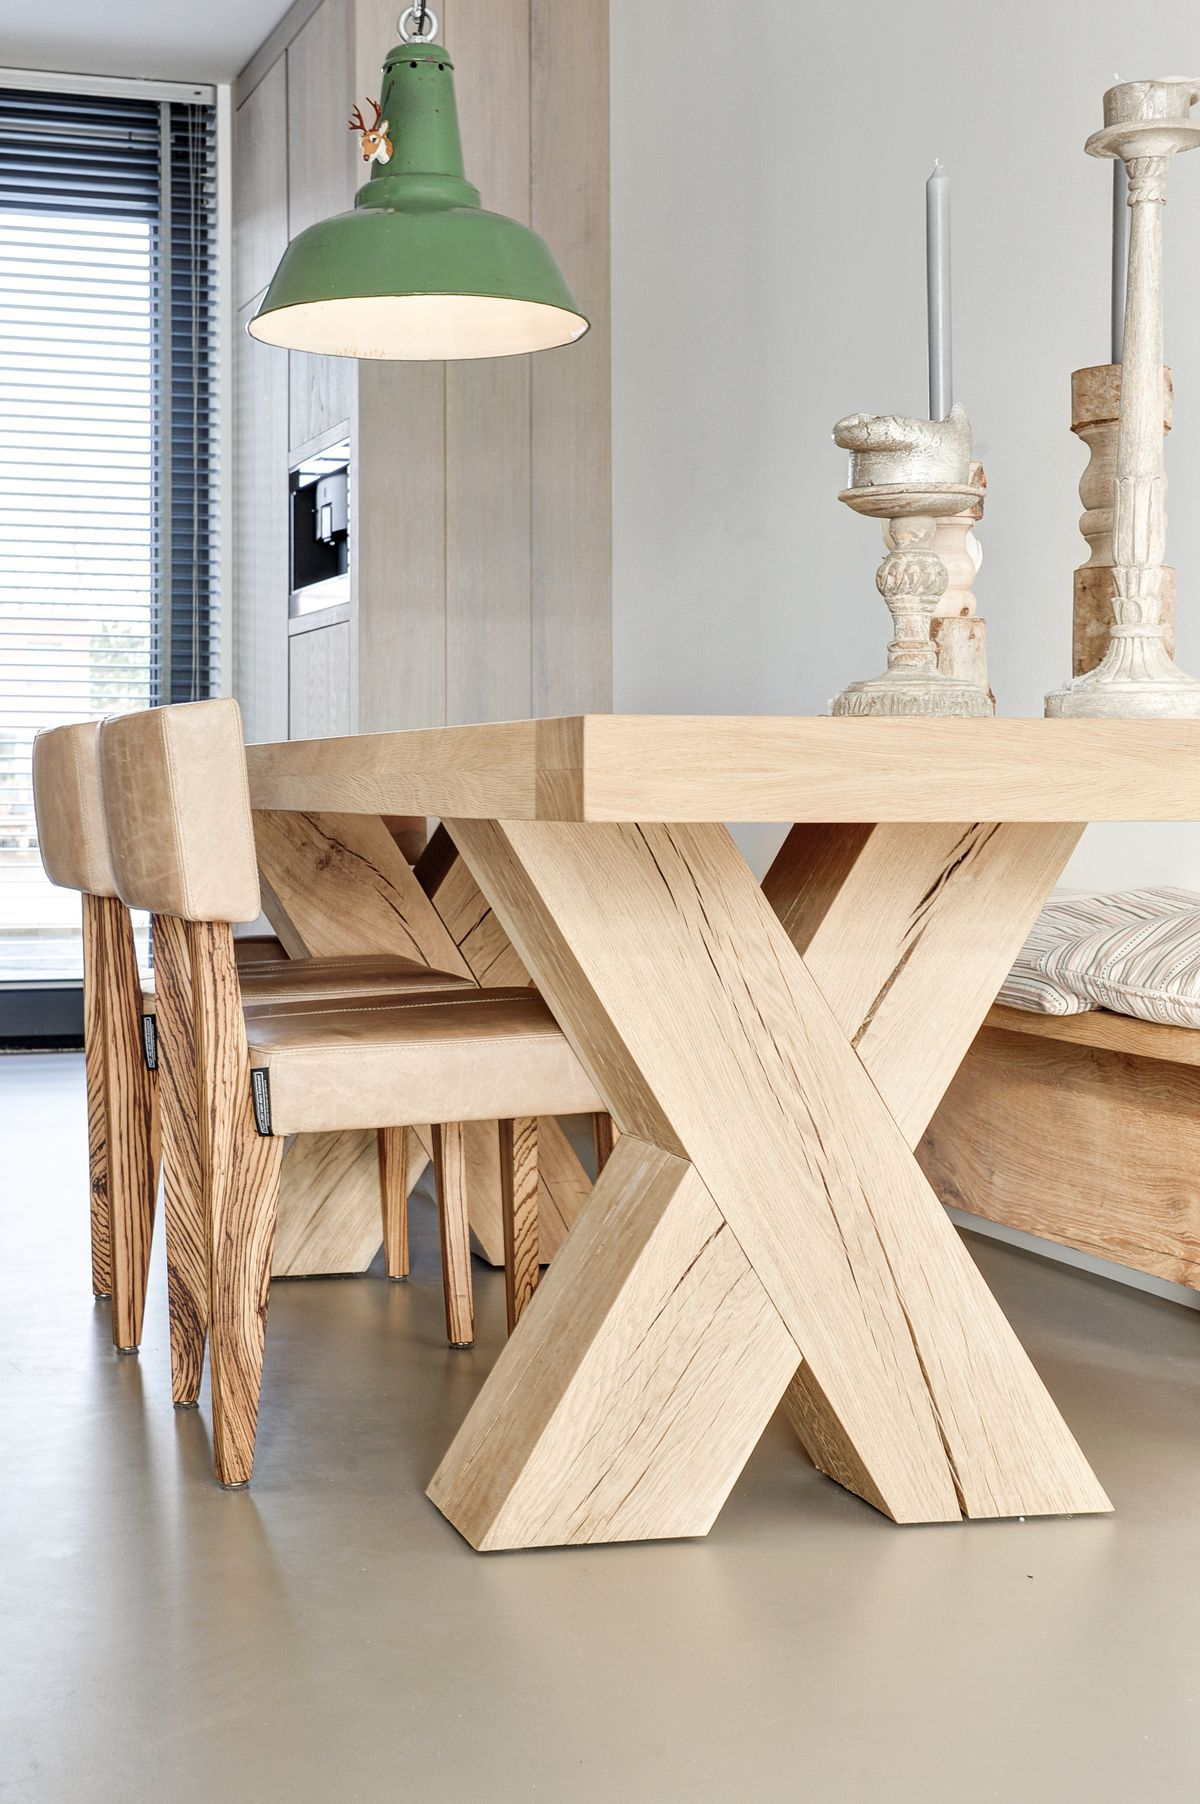 Super Chunky Natural Wood Table With Modern Lines.